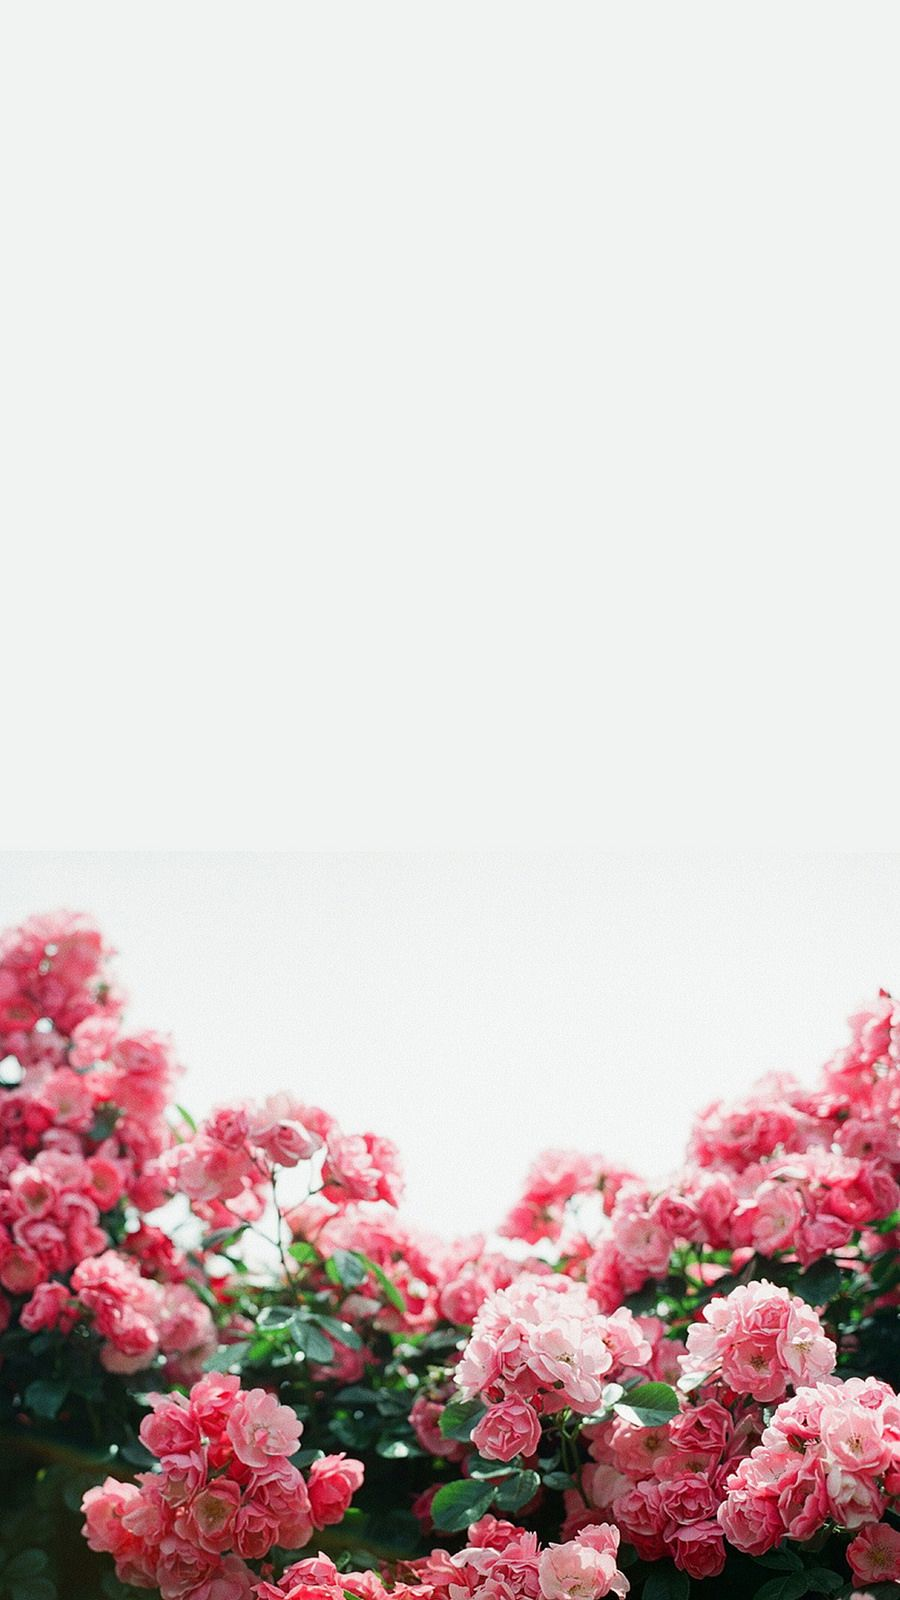 white pink floral flowers border frame iphone phone wallpaper background lock screen lorck. Black Bedroom Furniture Sets. Home Design Ideas